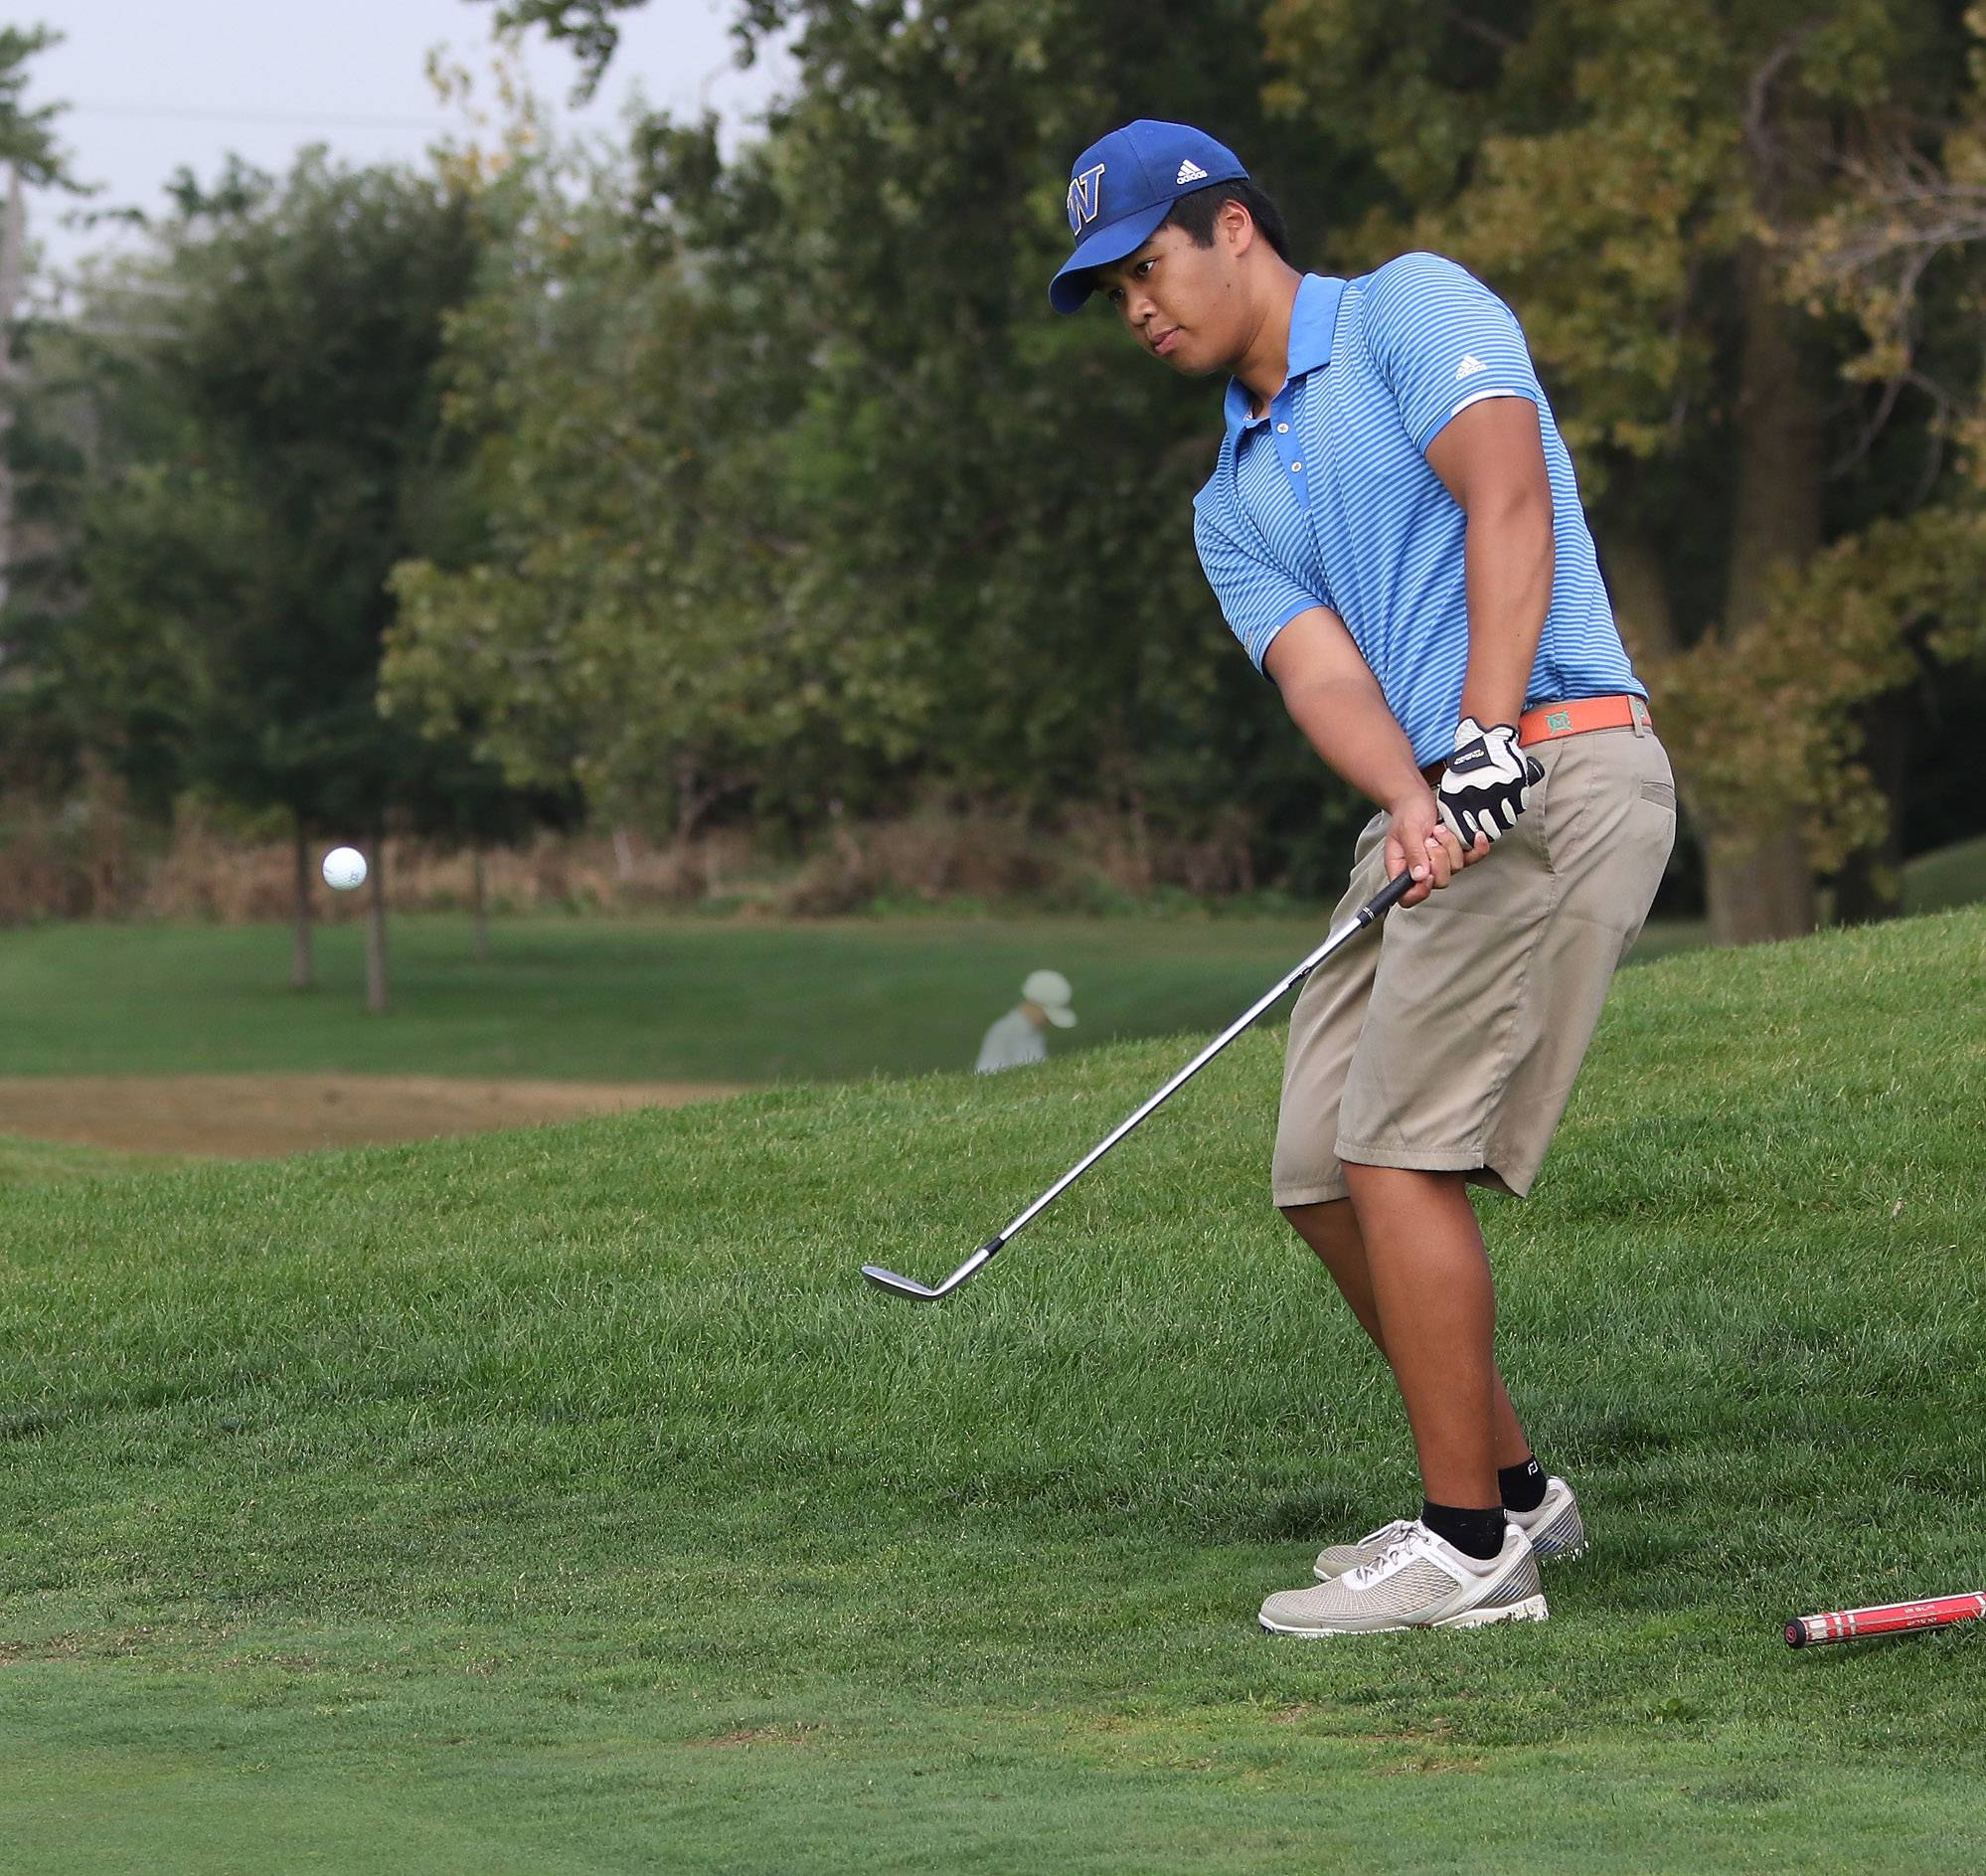 Warren's Karl Tolentino hits onto the green on the 14th hole during the North Suburban Conference tournament on Tuesday at Willow Glen Golf Course in North Chicago.